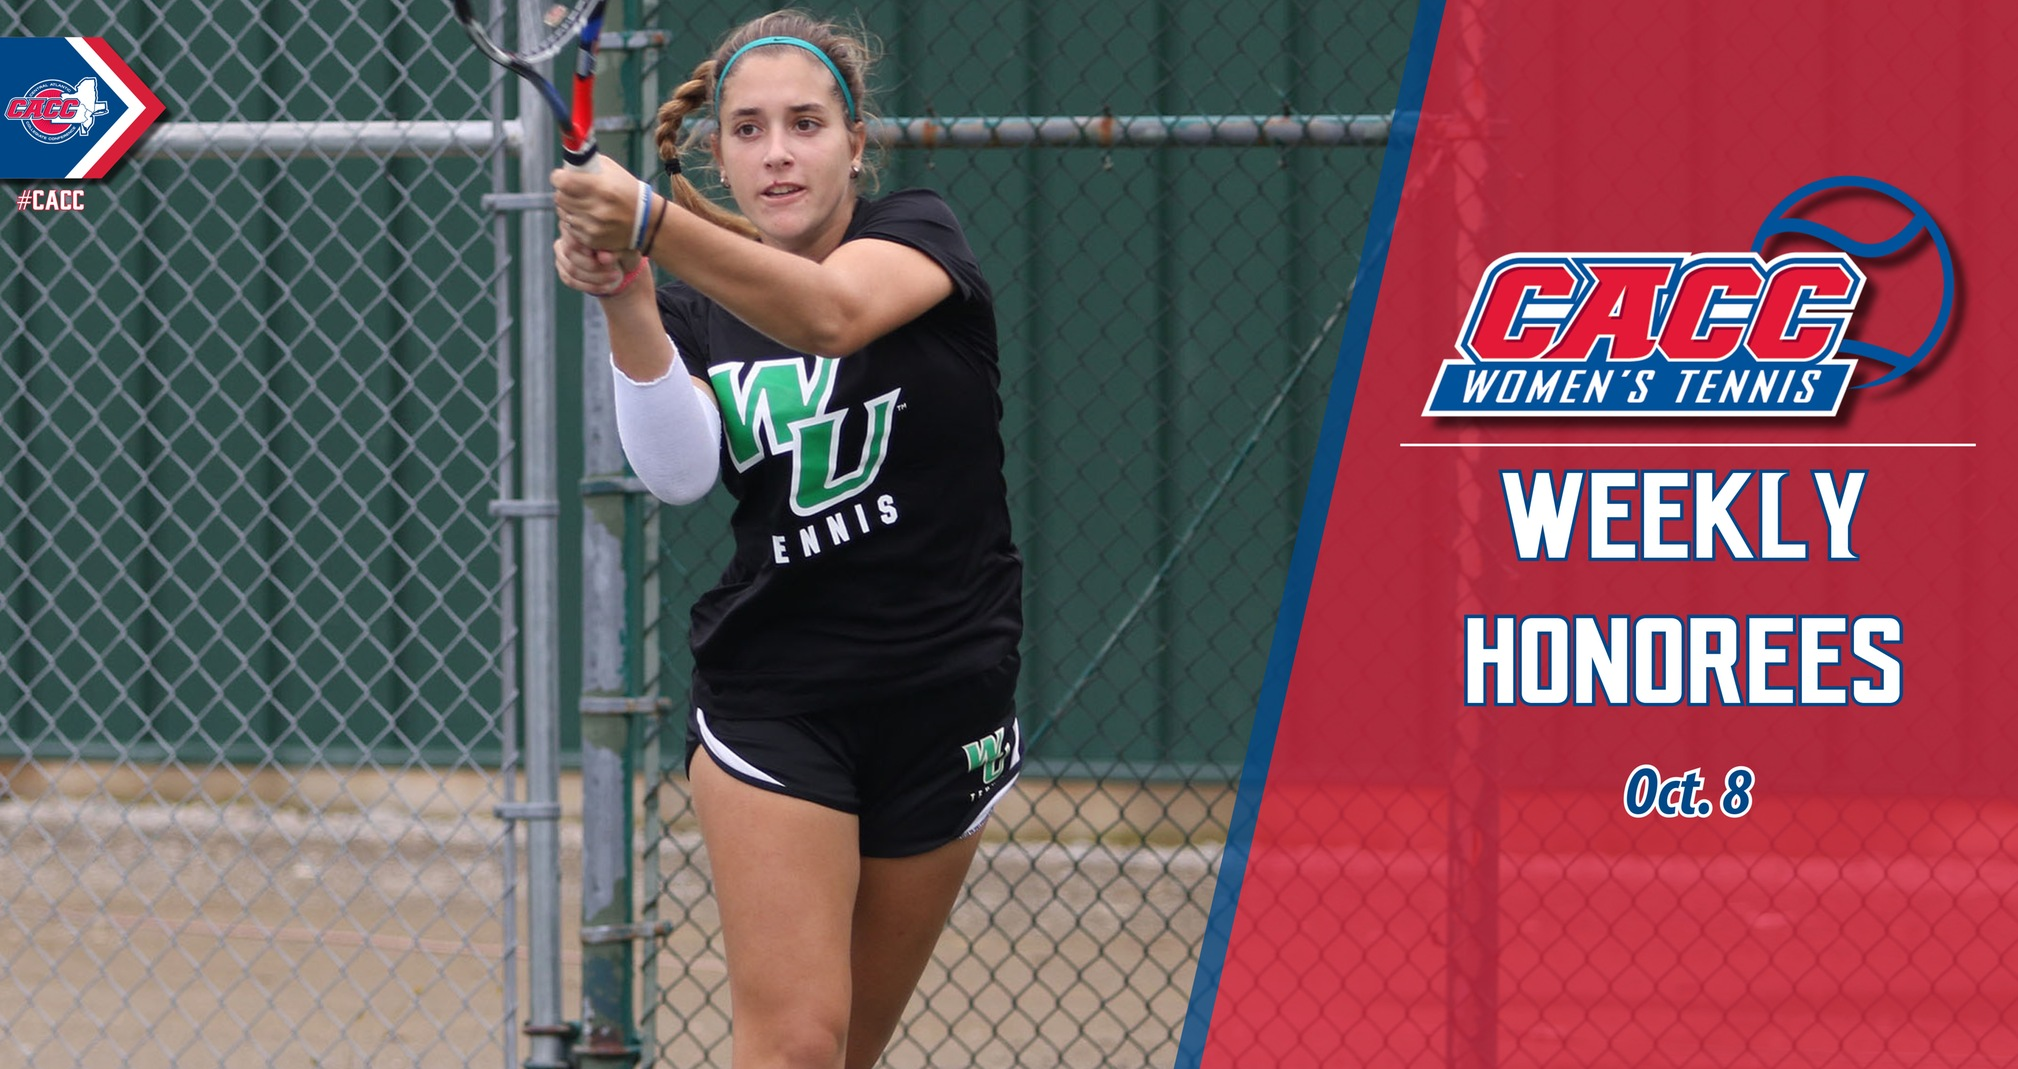 CACC Women's Tennis Weekly Honorees (Oct. 8)